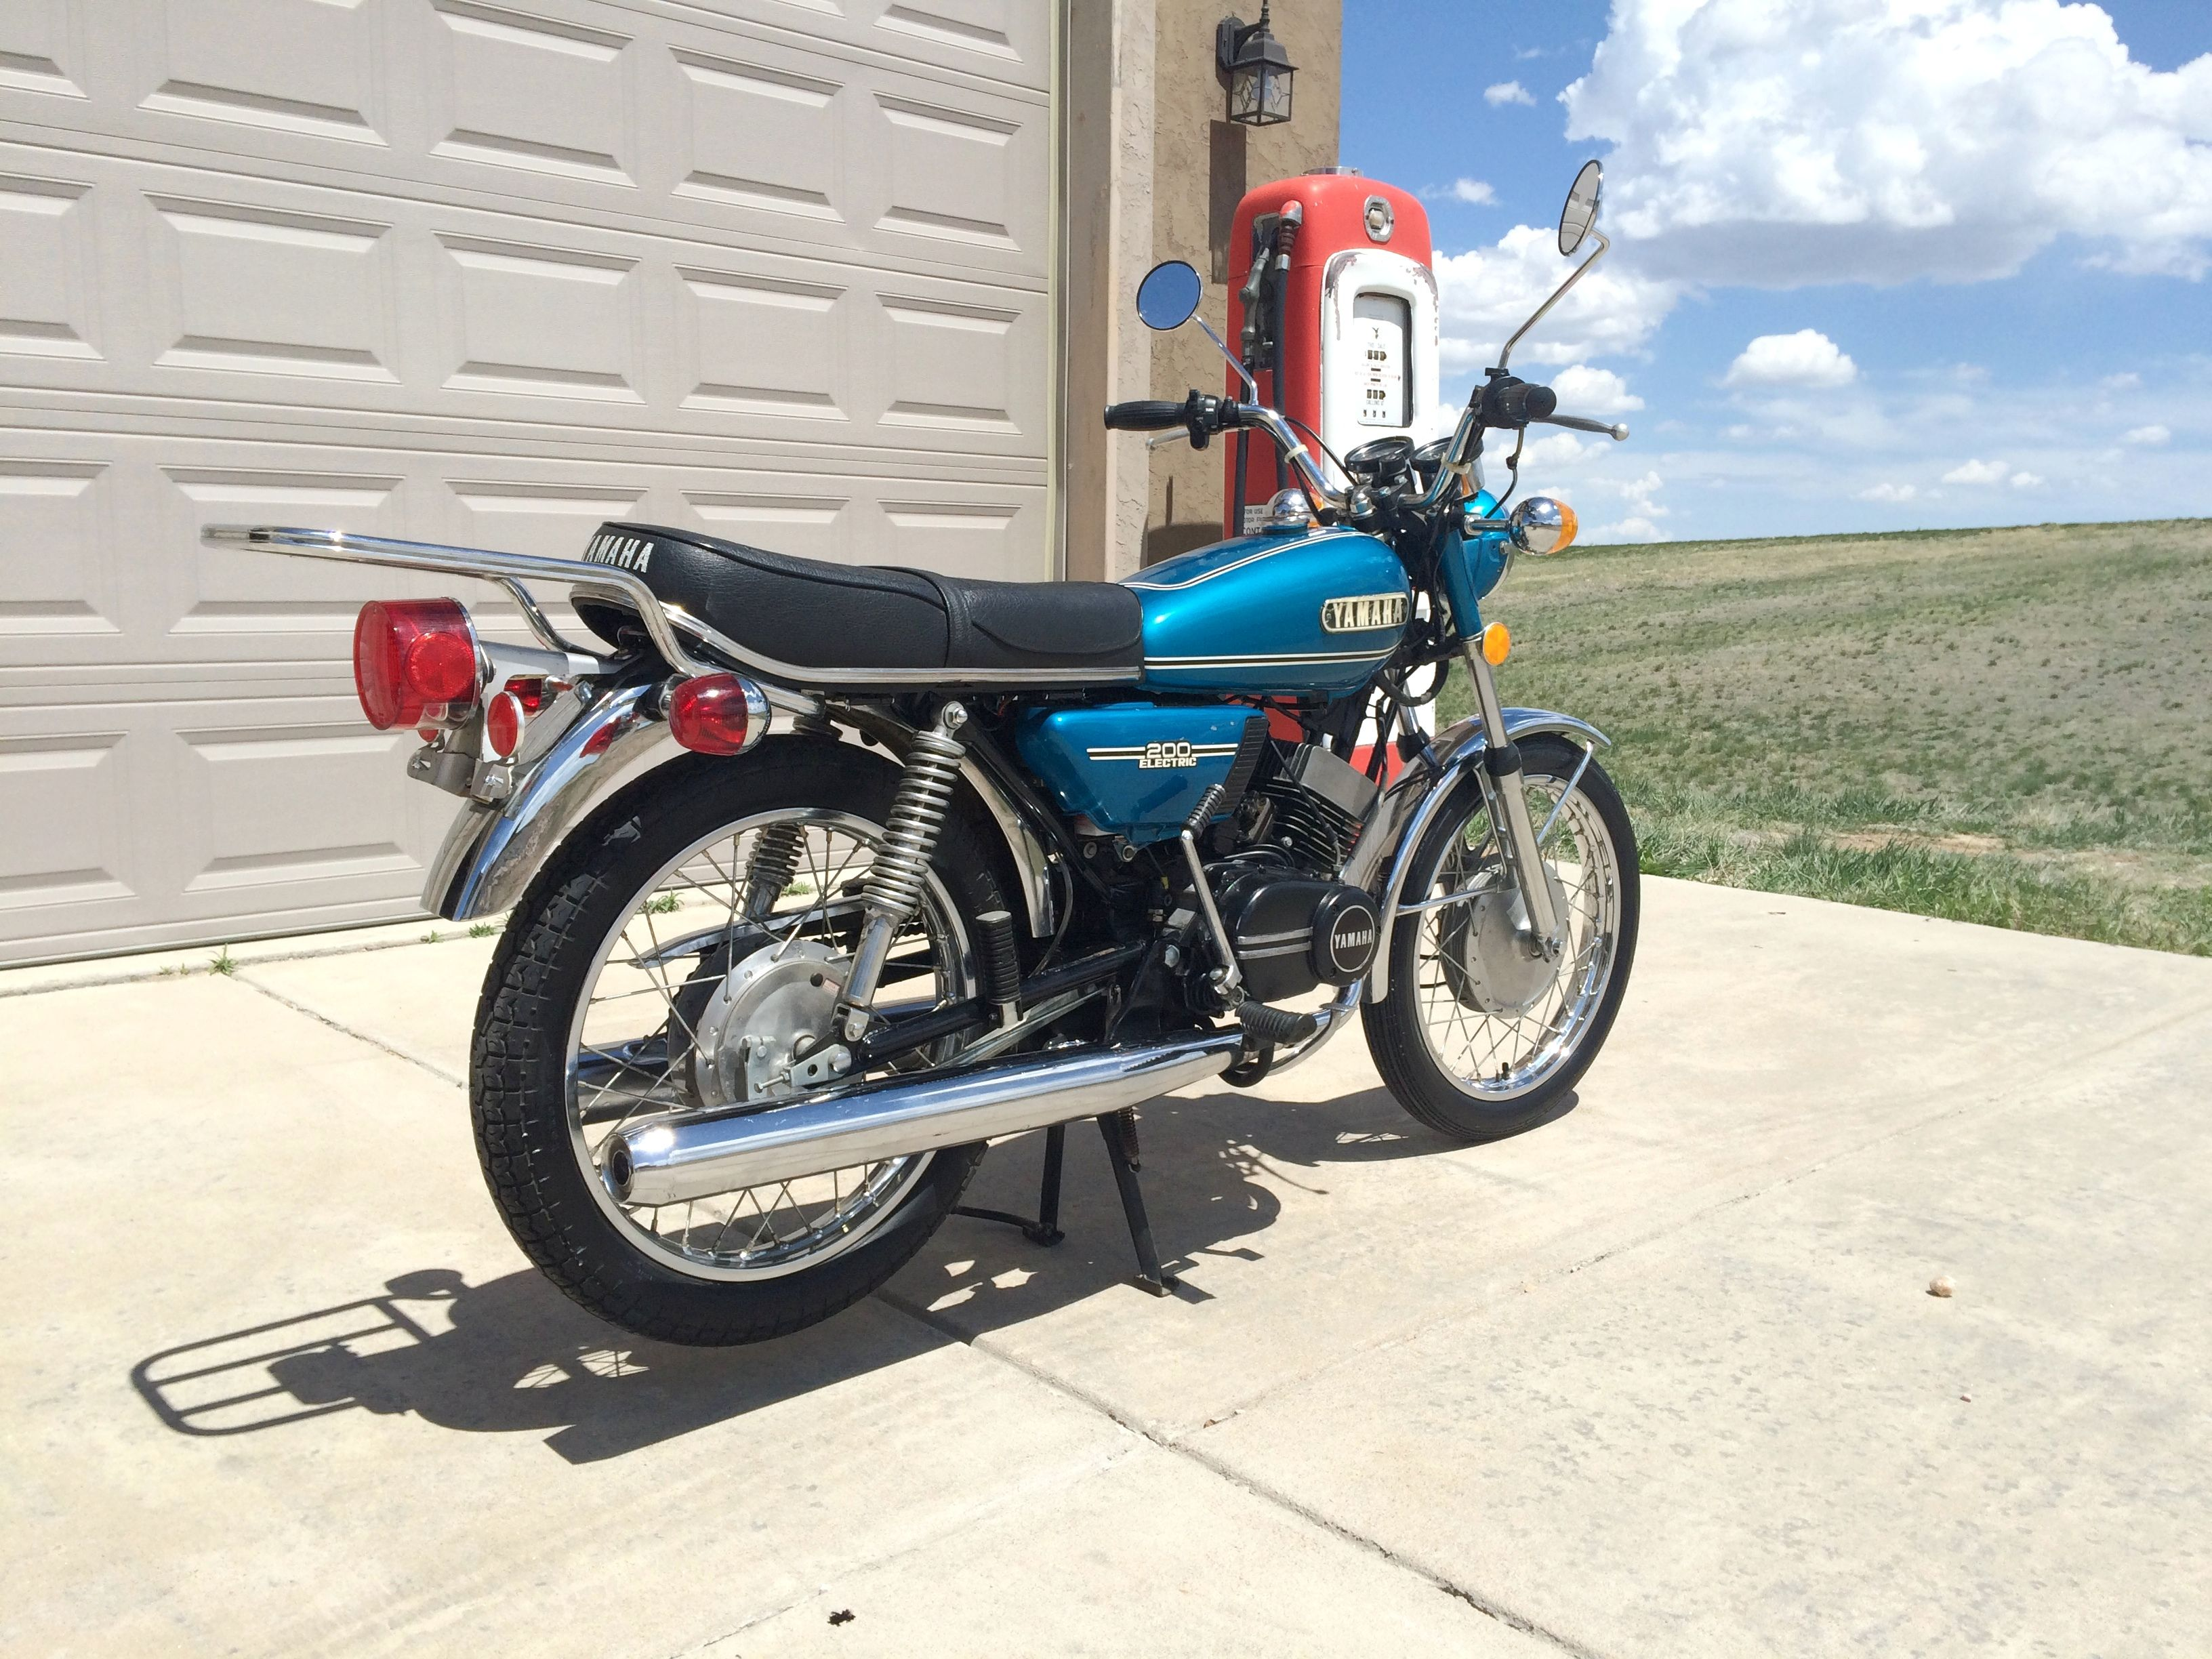 1974 yamaha rd200a 200cc two stroke twin w 5spd